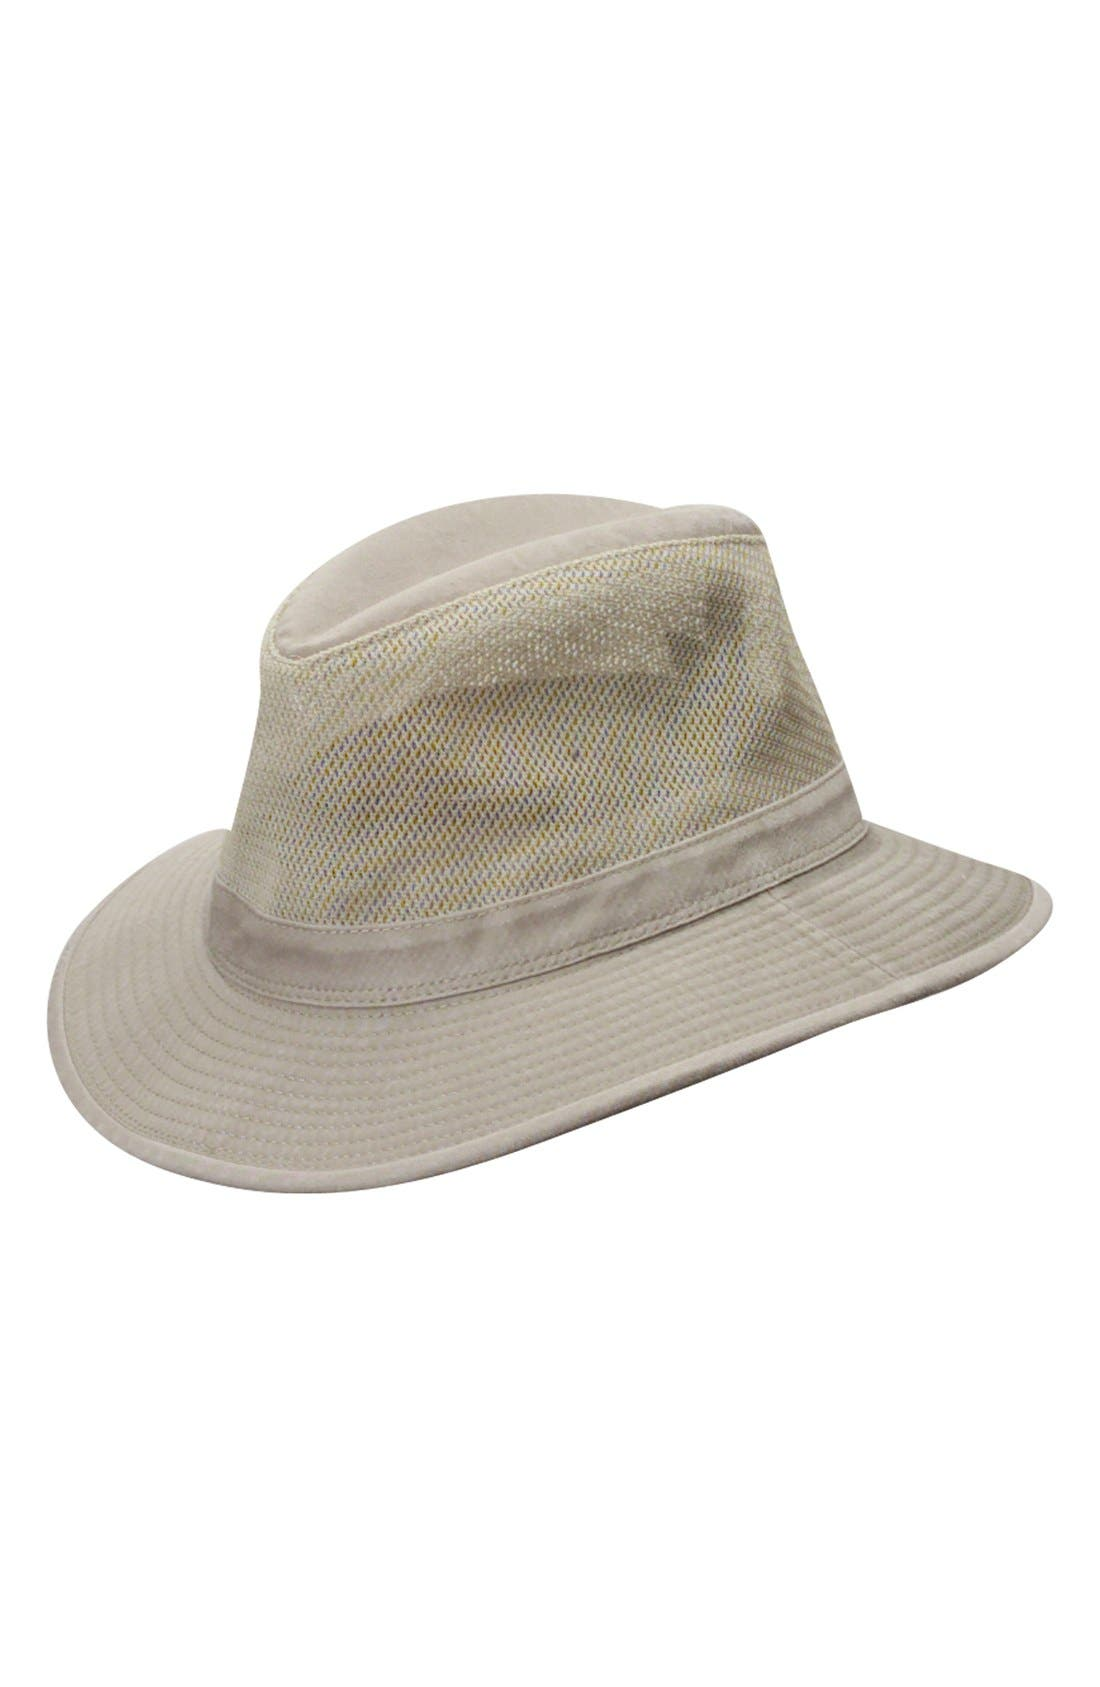 Main Image - Dorfman Pacific Washed Twill & Mesh Safari Hat